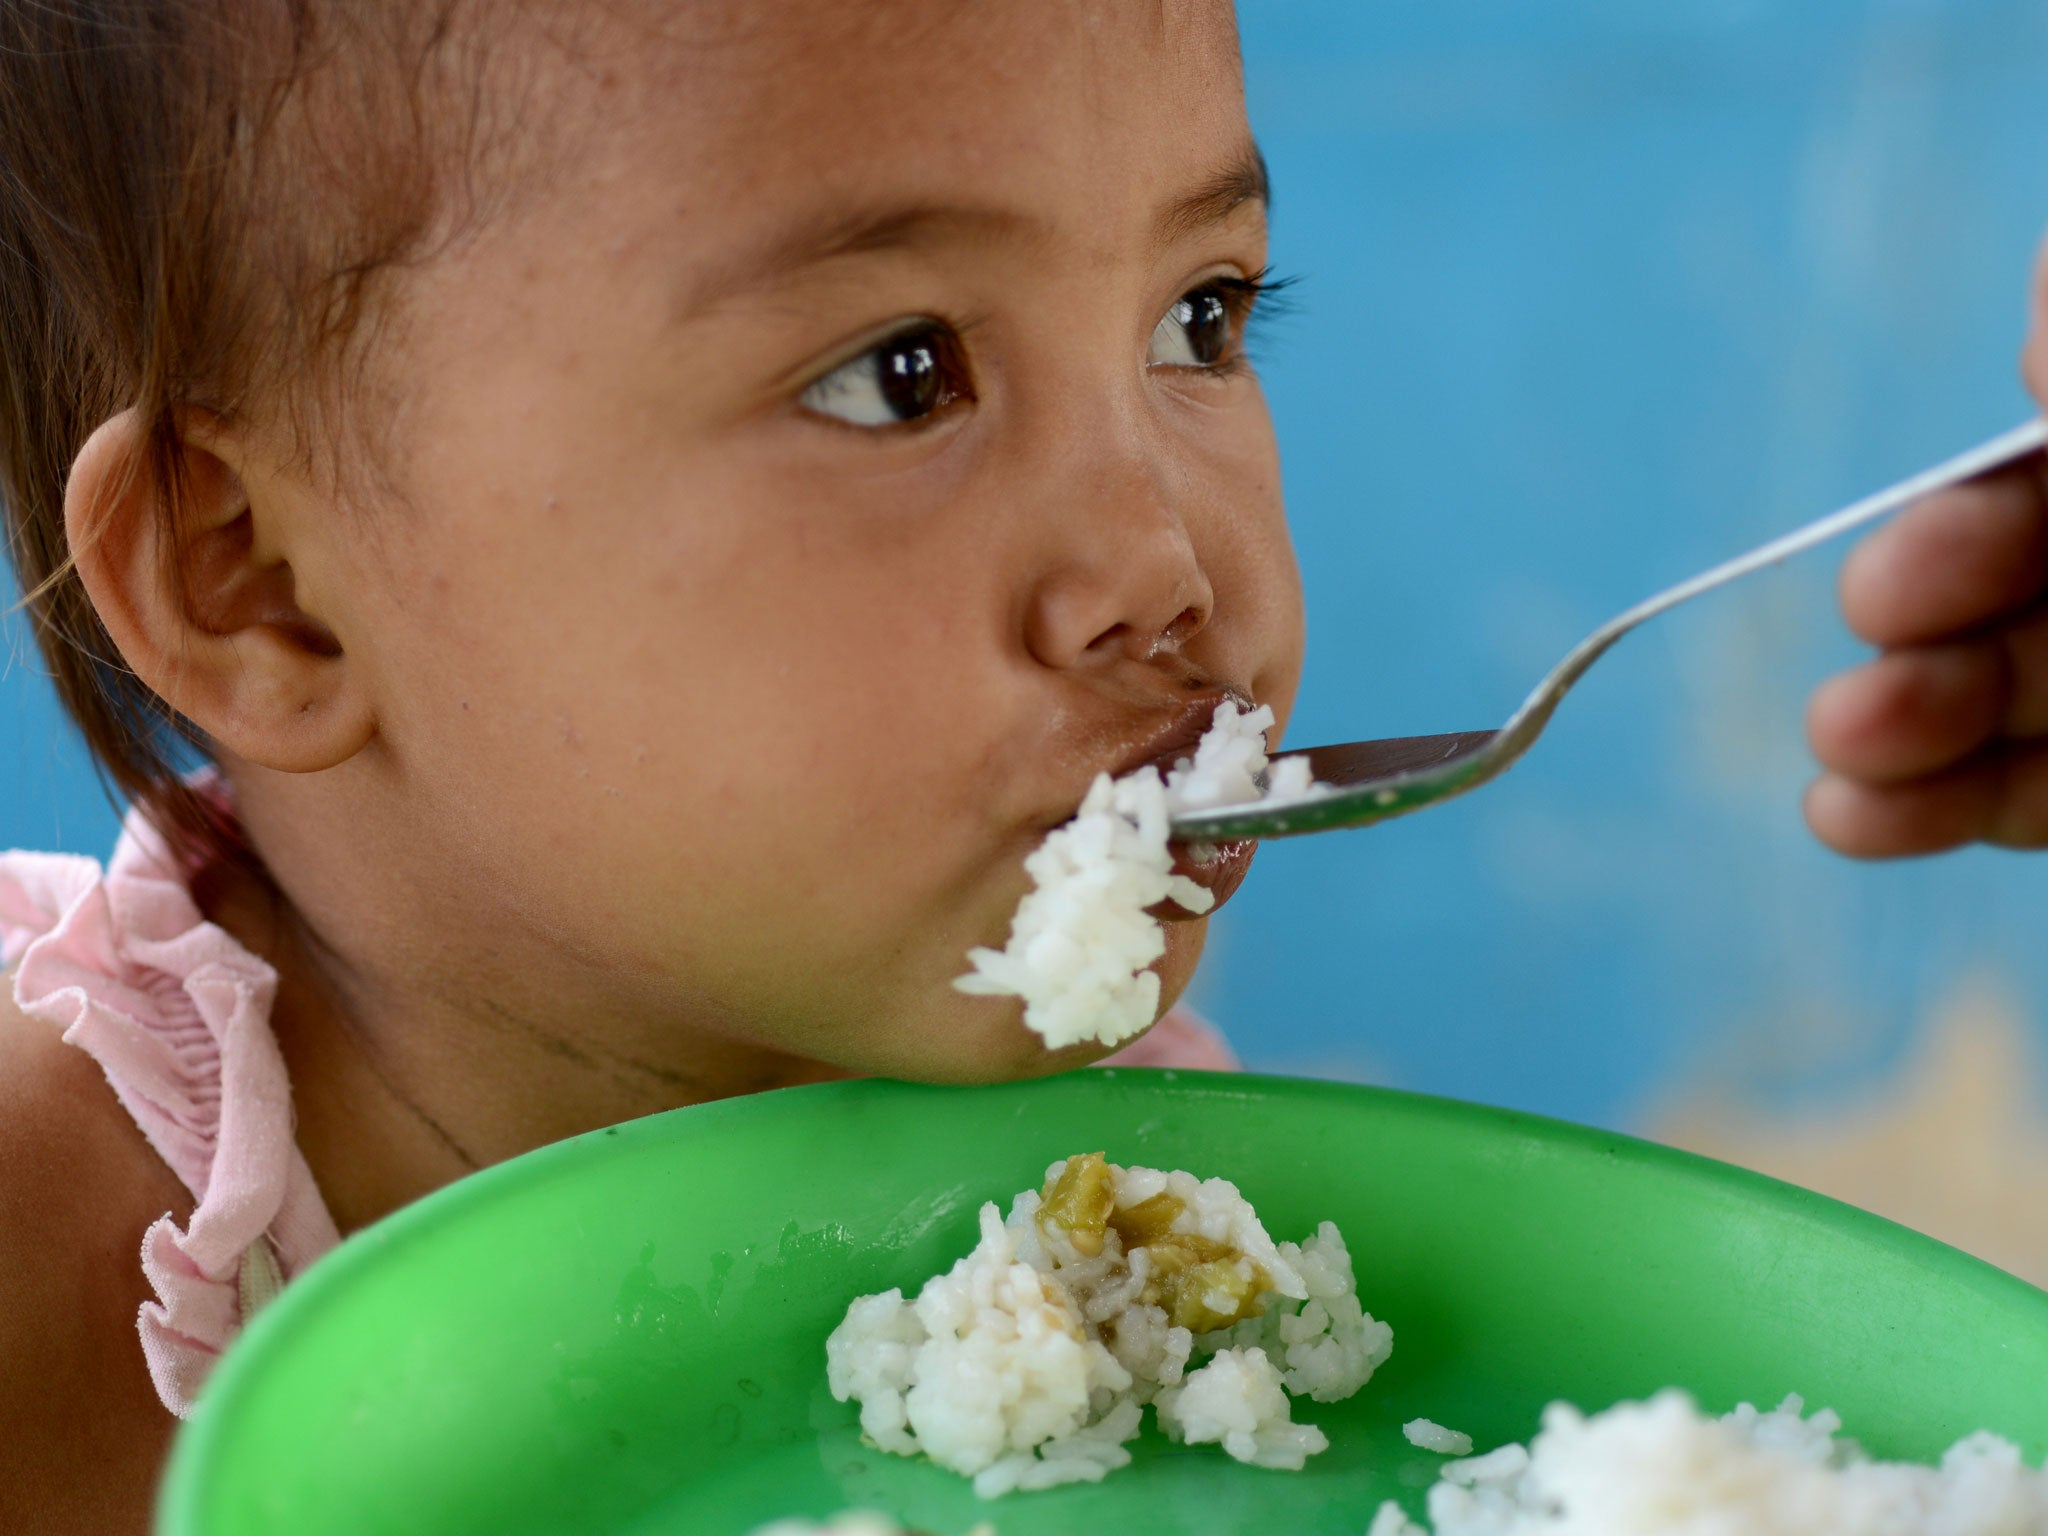 The habit of overeating is laid in infancy